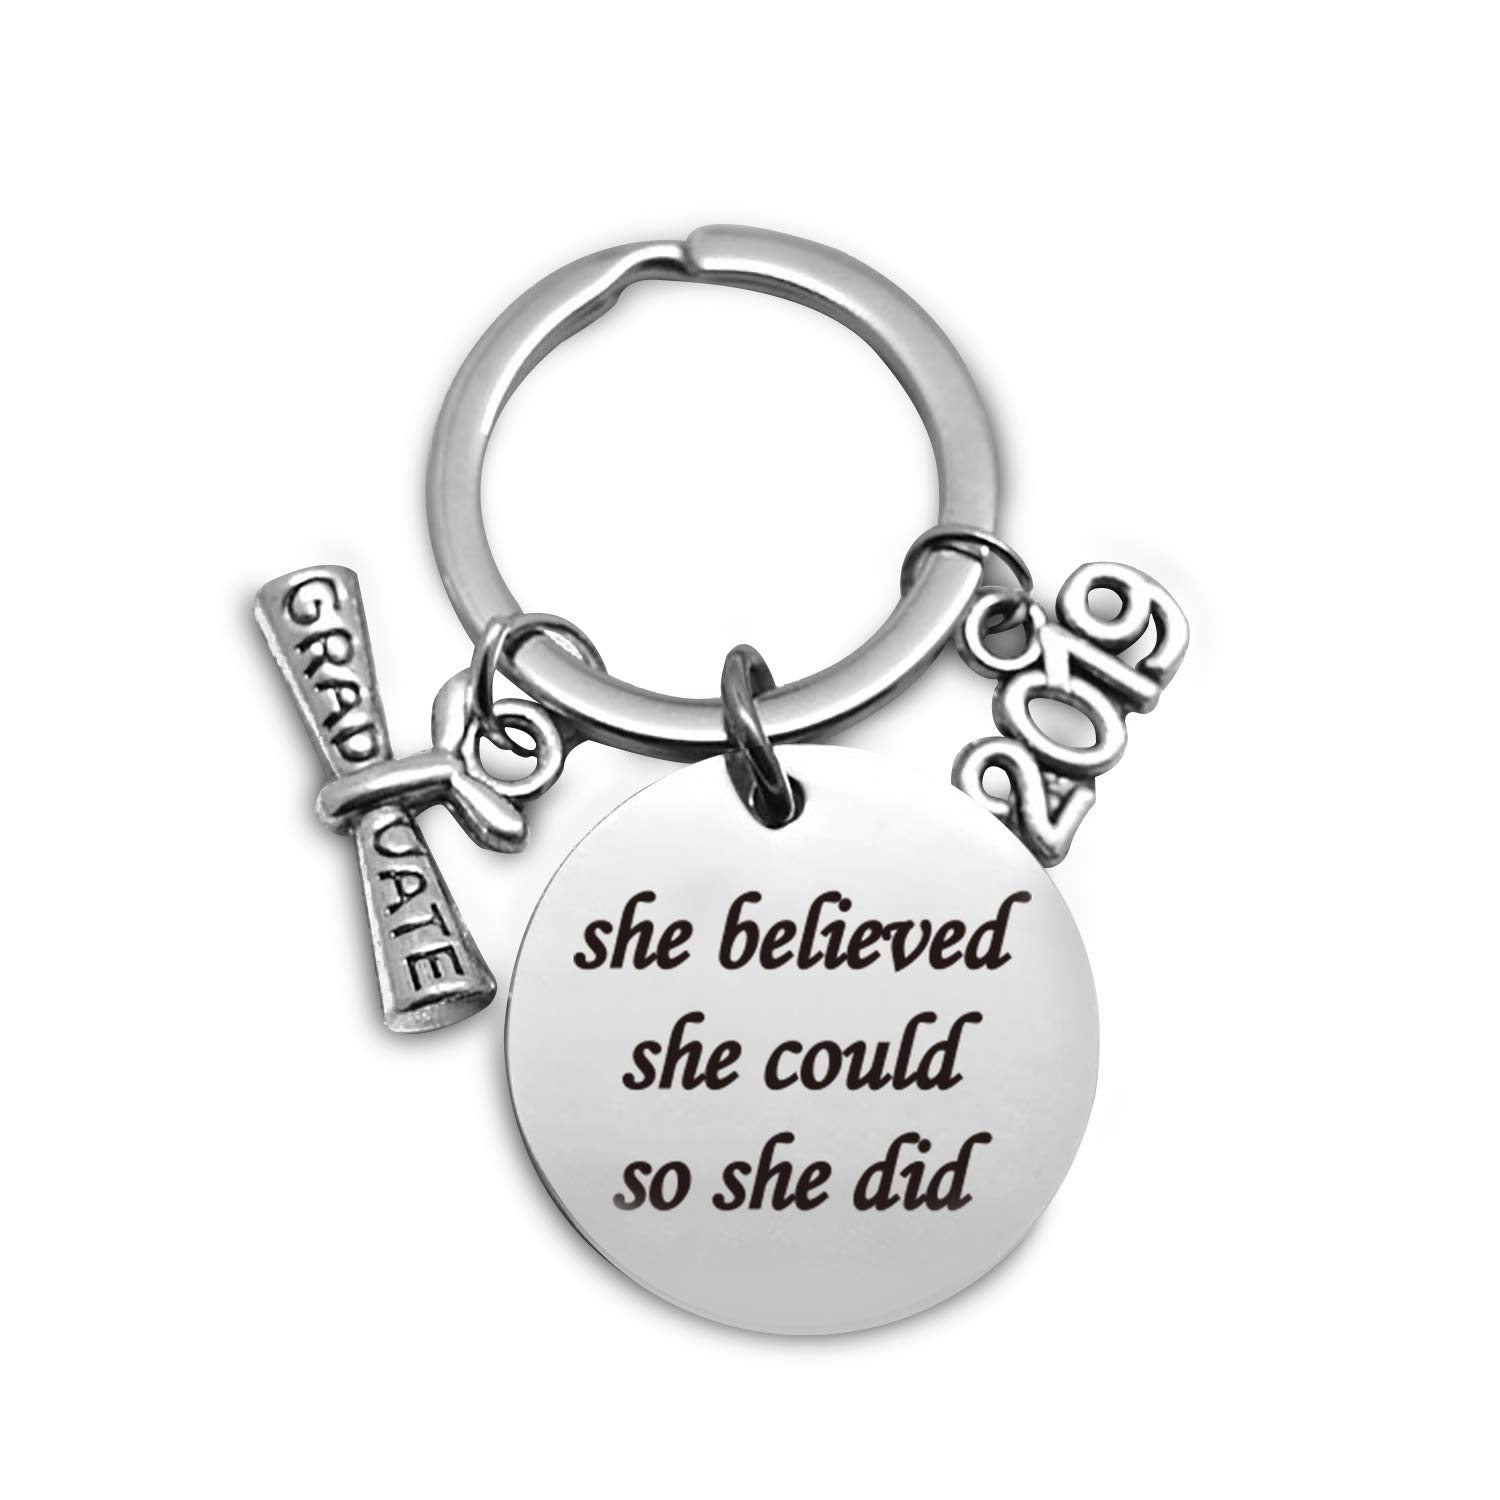 Inspirational Motivational Quotes Stainless Steel Key Chain Ring, Best  Sisters Friends Girls Quotes Keychain Gifts